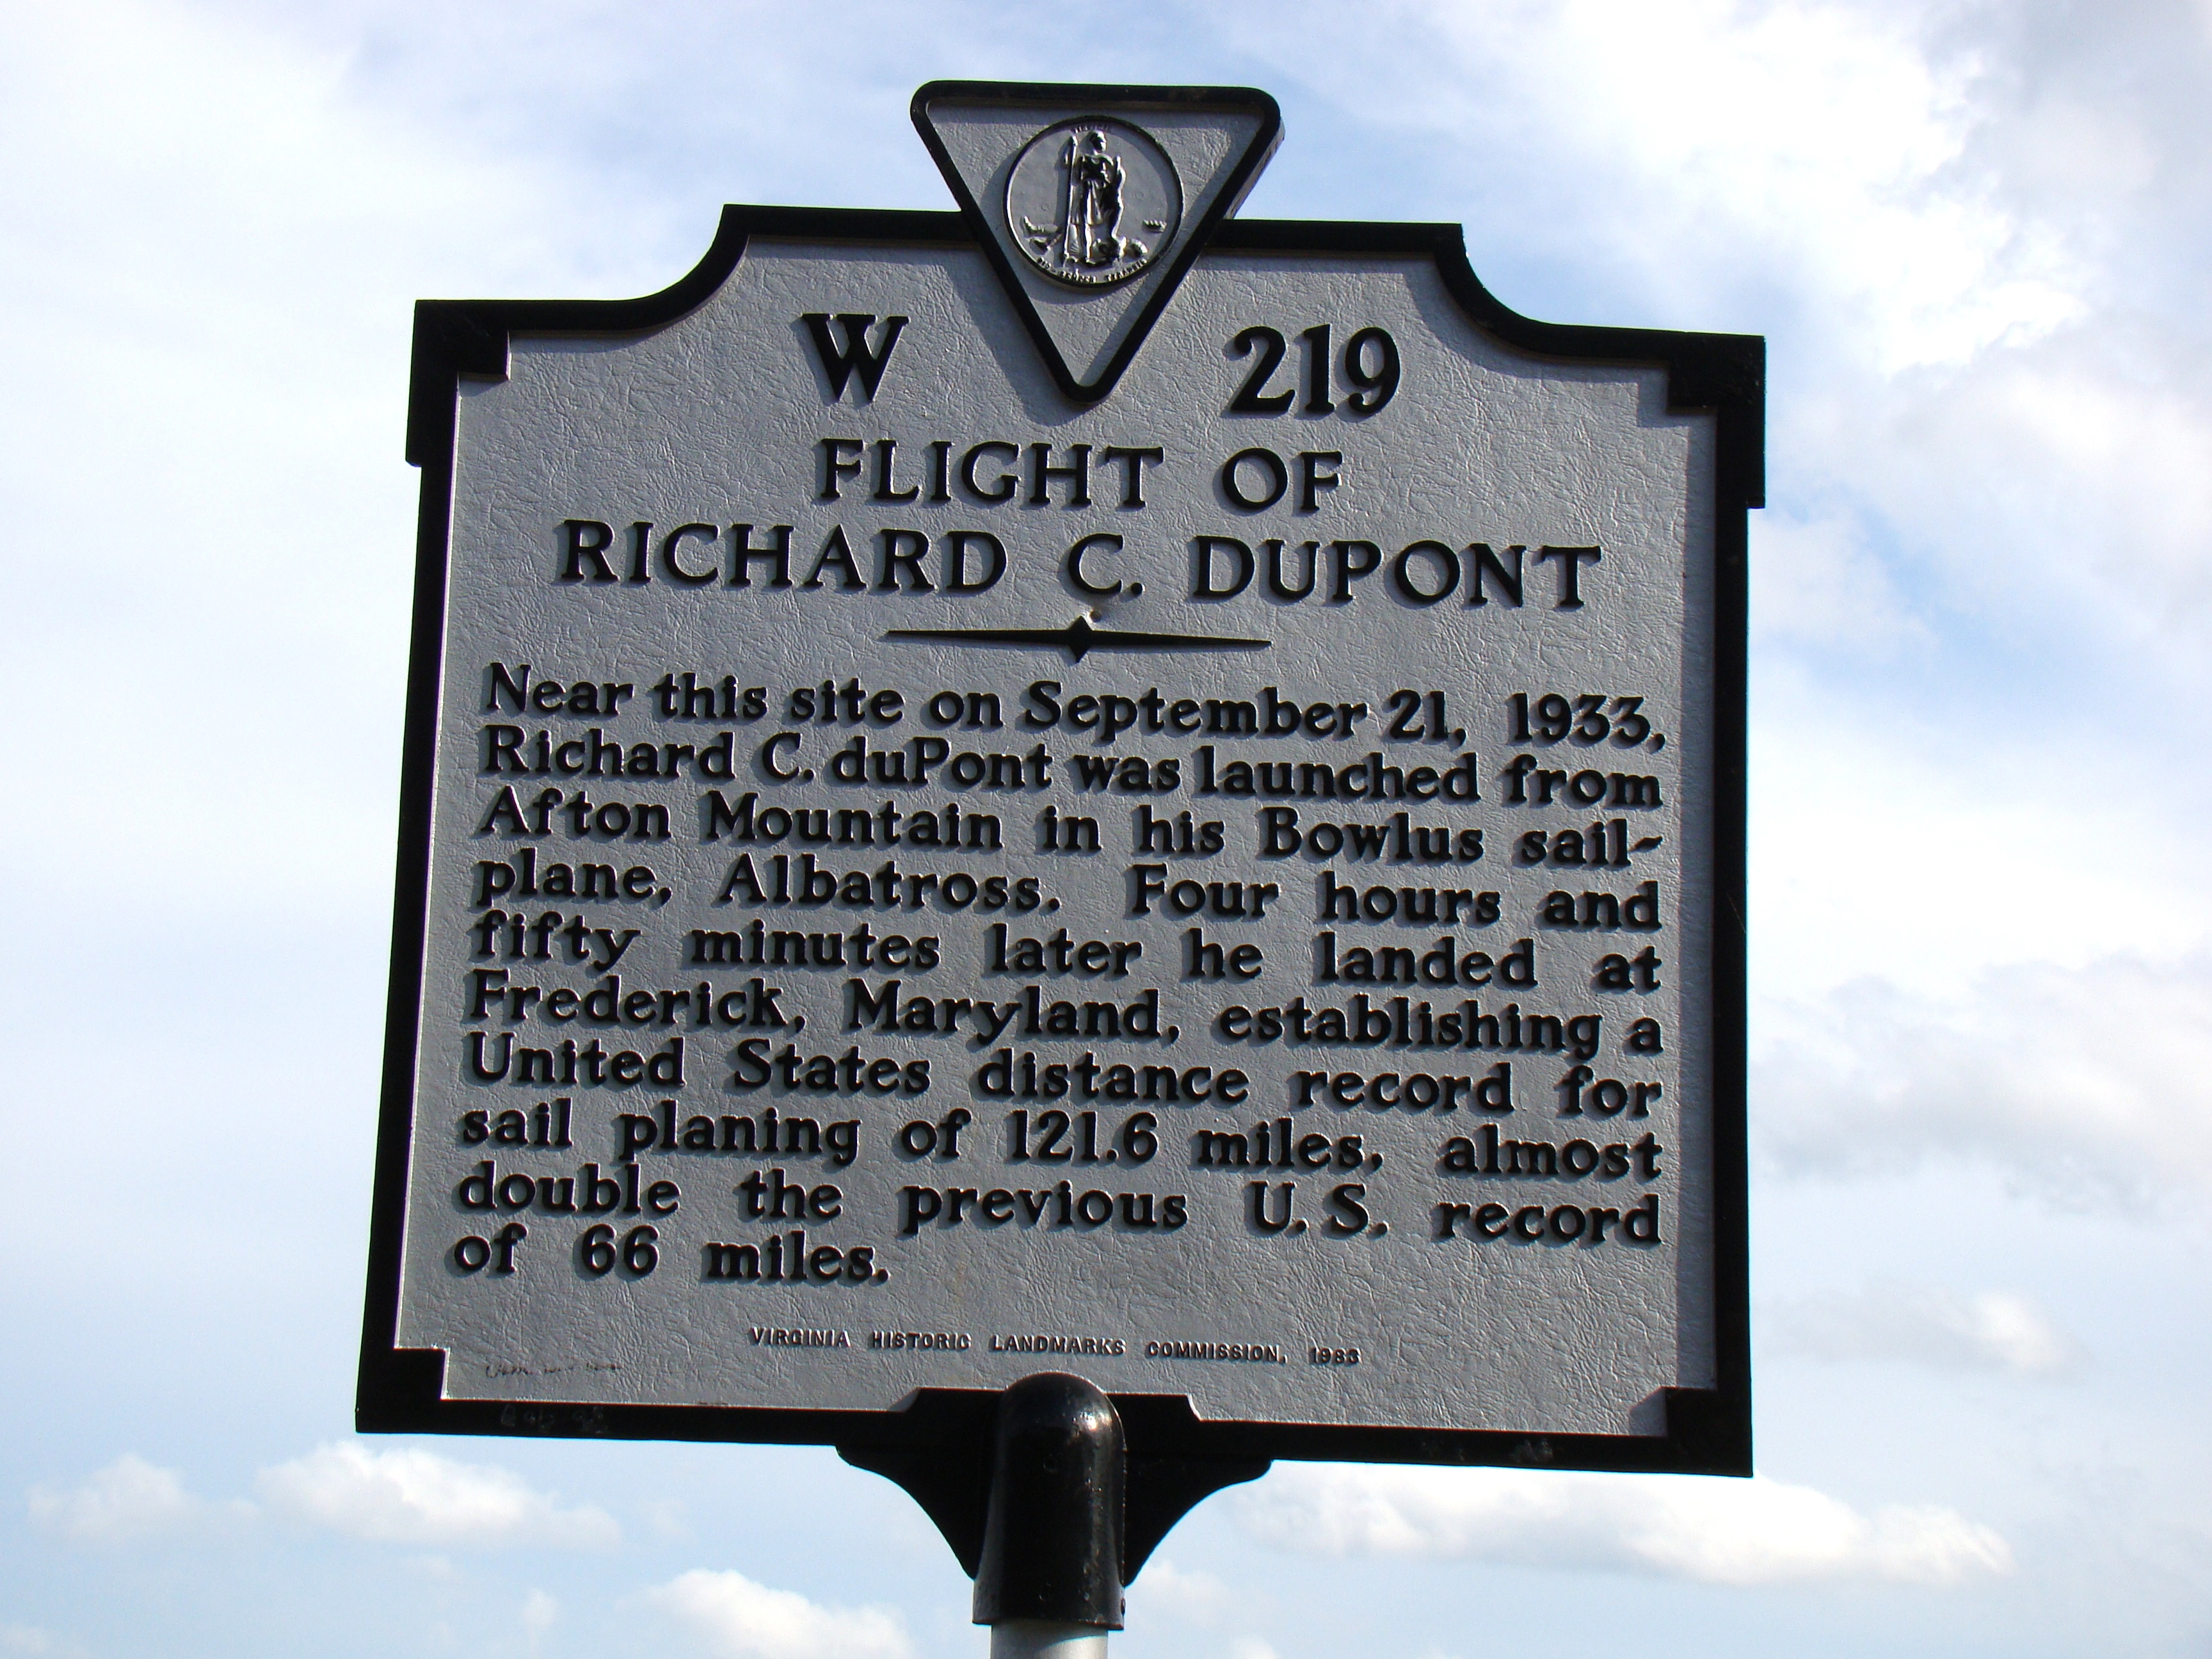 Flight of Richard C. duPont Marker